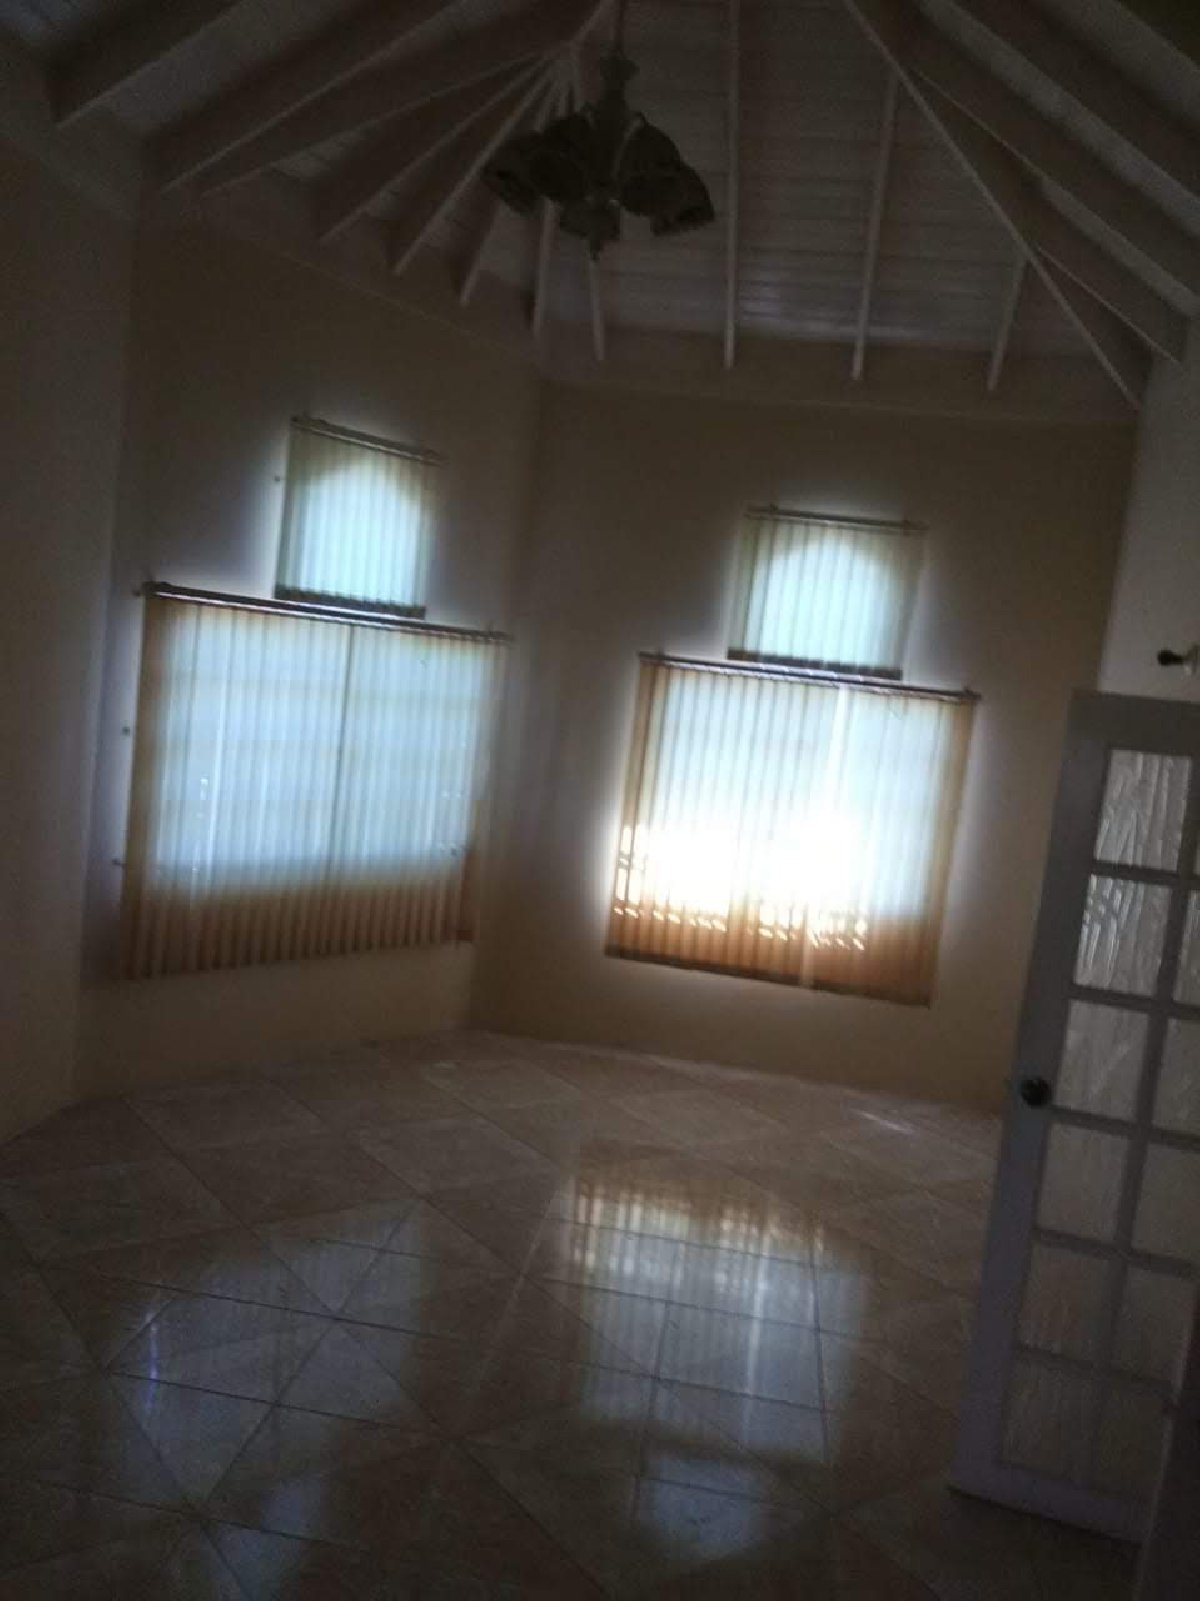 4 Bedrooms 3 Bathrooms For Sale In Cavehill Estate St Catherine Houses